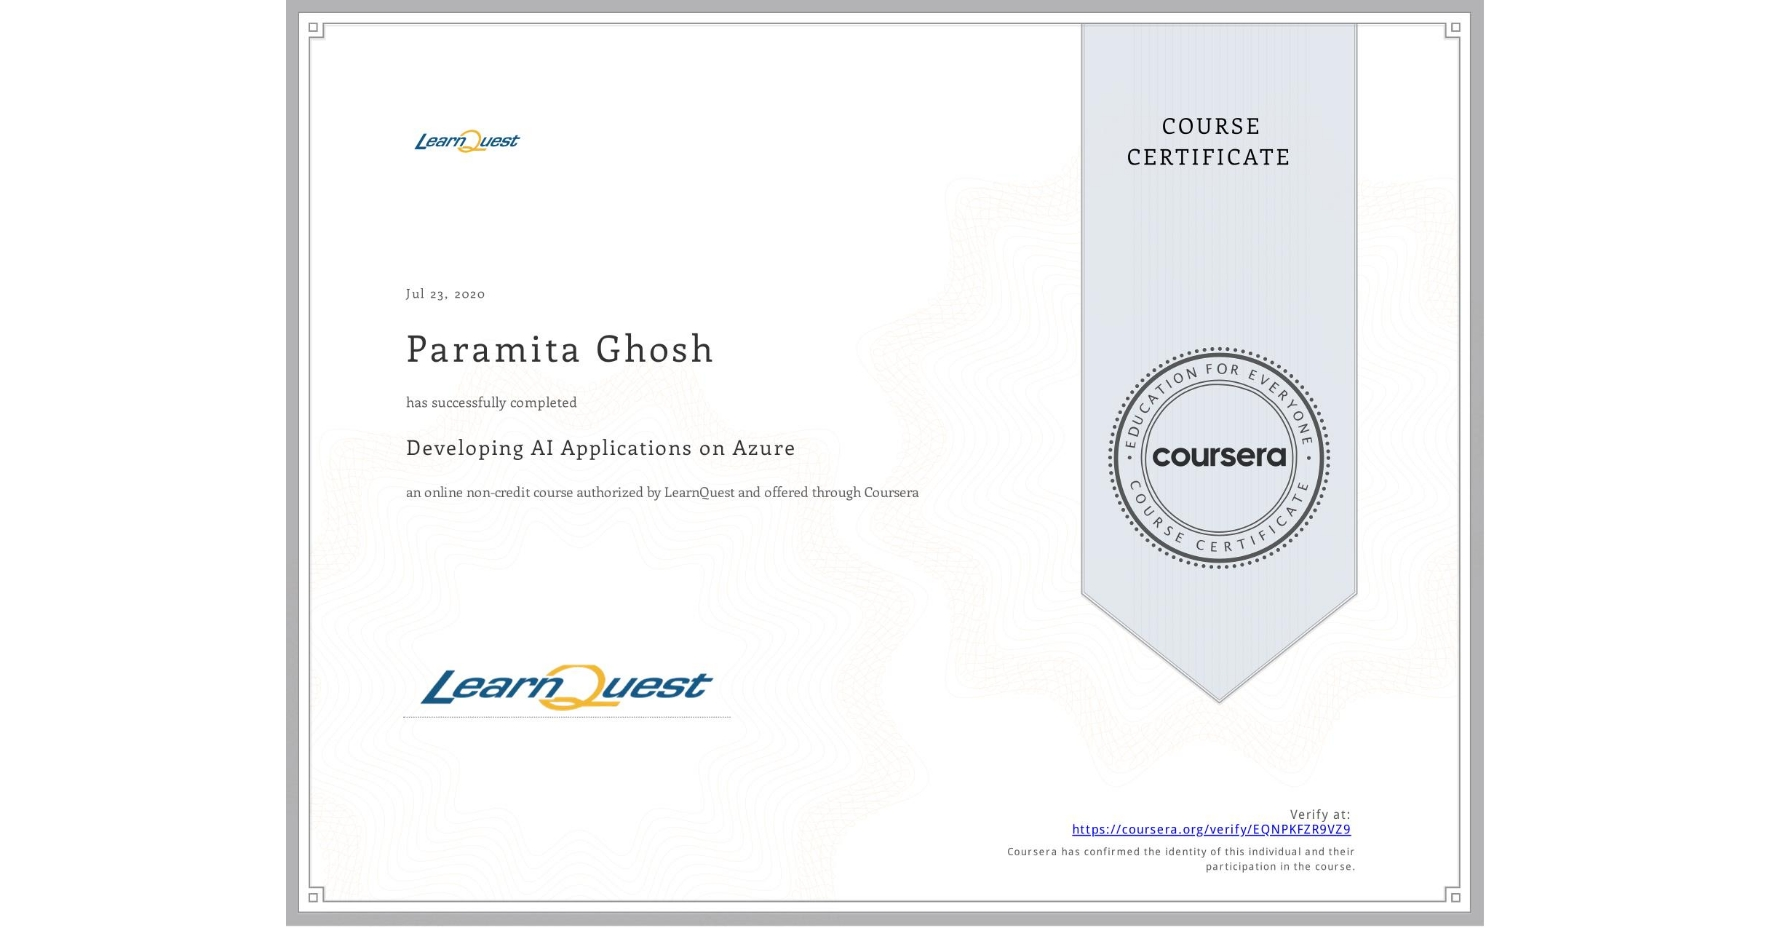 View certificate for Paramita Ghosh, Developing AI Applications on Azure, an online non-credit course authorized by LearnQuest and offered through Coursera